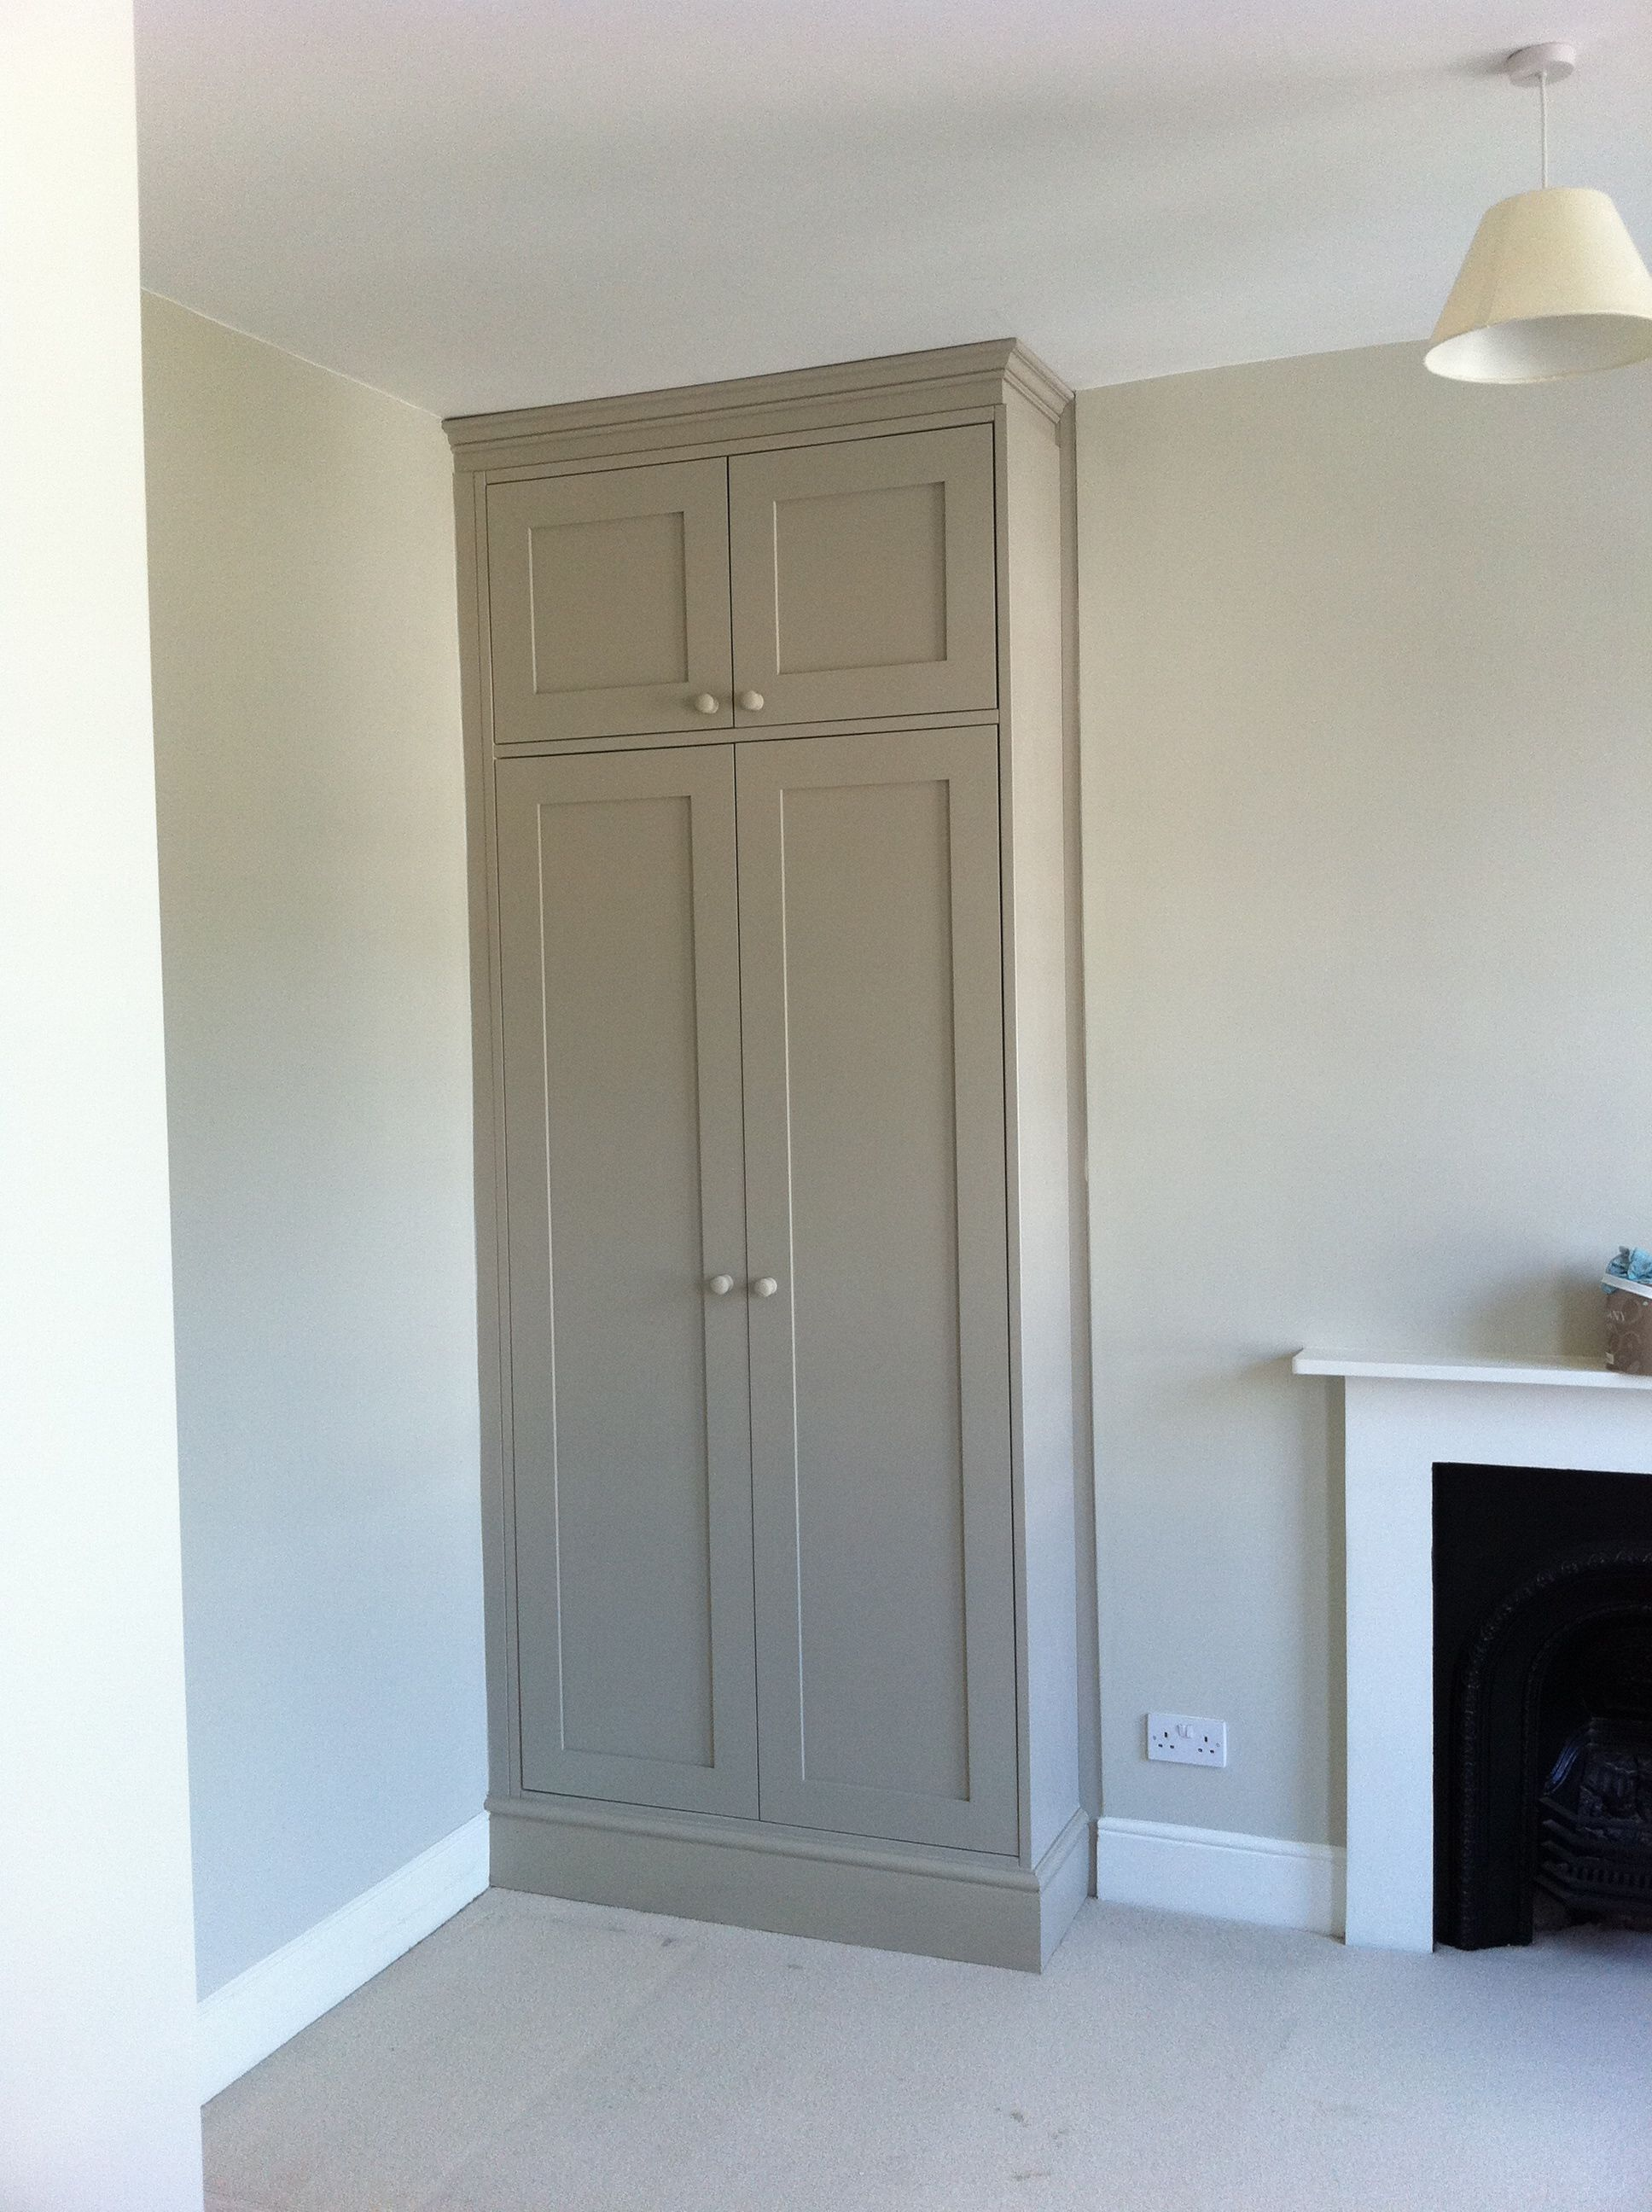 bespoke fitted wardrobe with shaker panel doors by fine. Black Bedroom Furniture Sets. Home Design Ideas